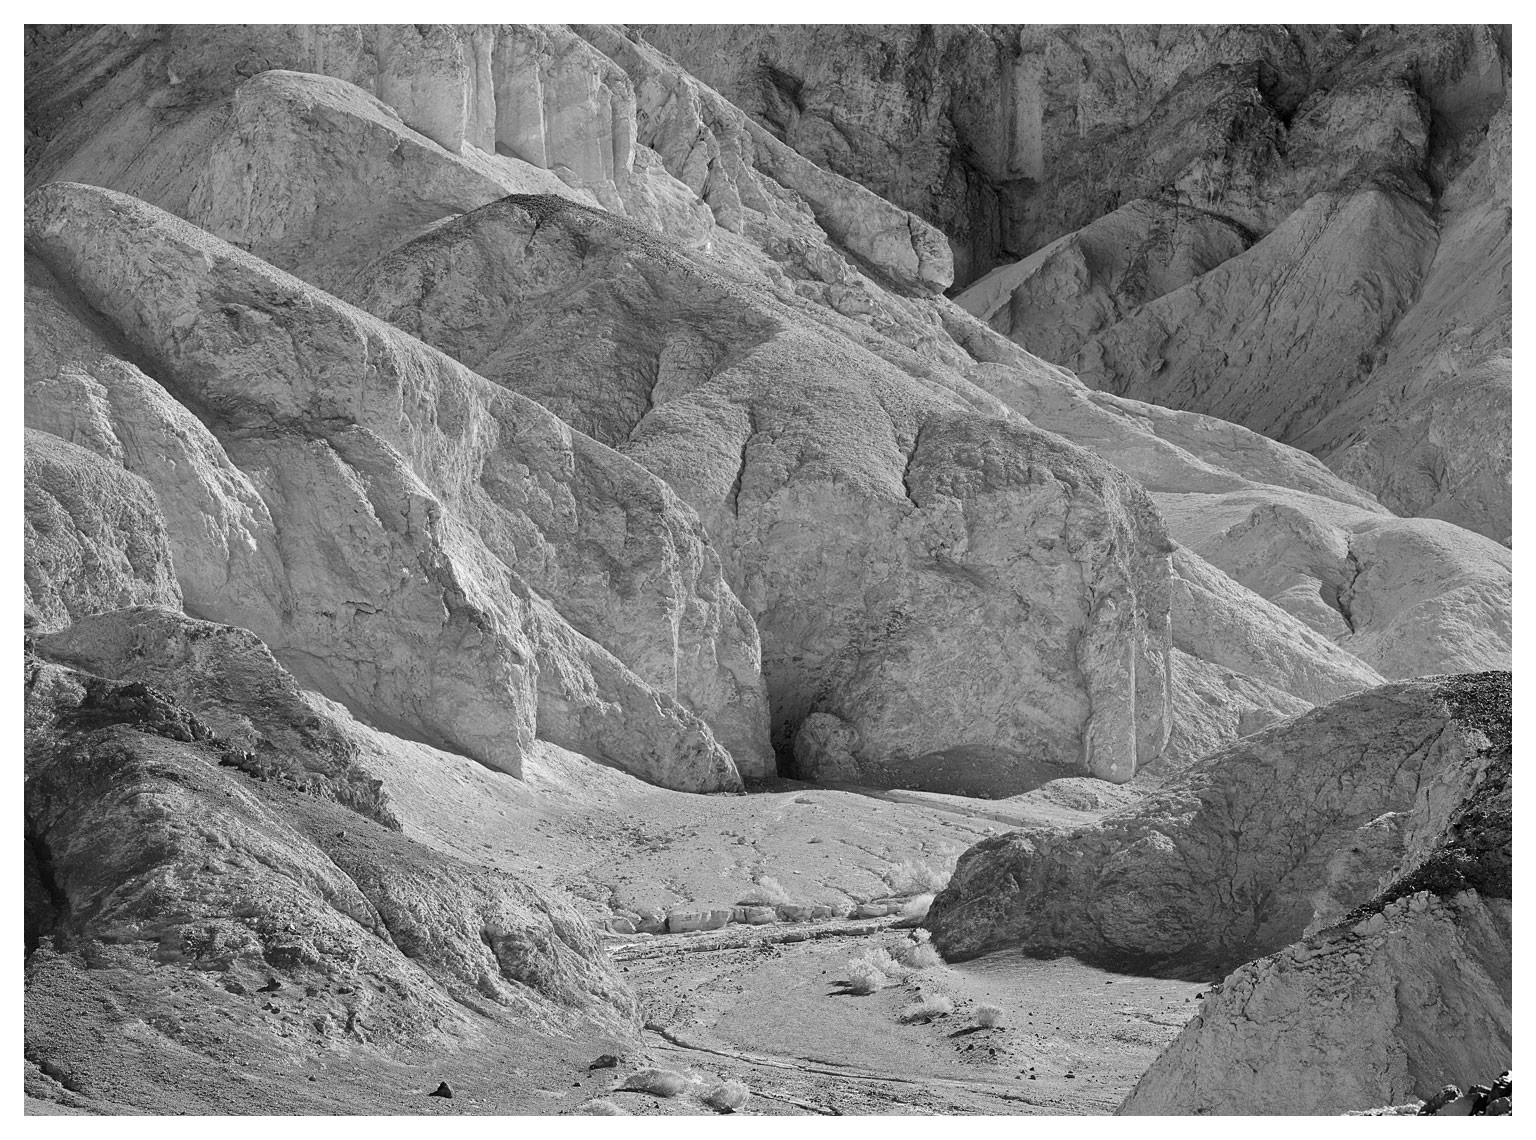 exposed-1-death-valley-national-park-california